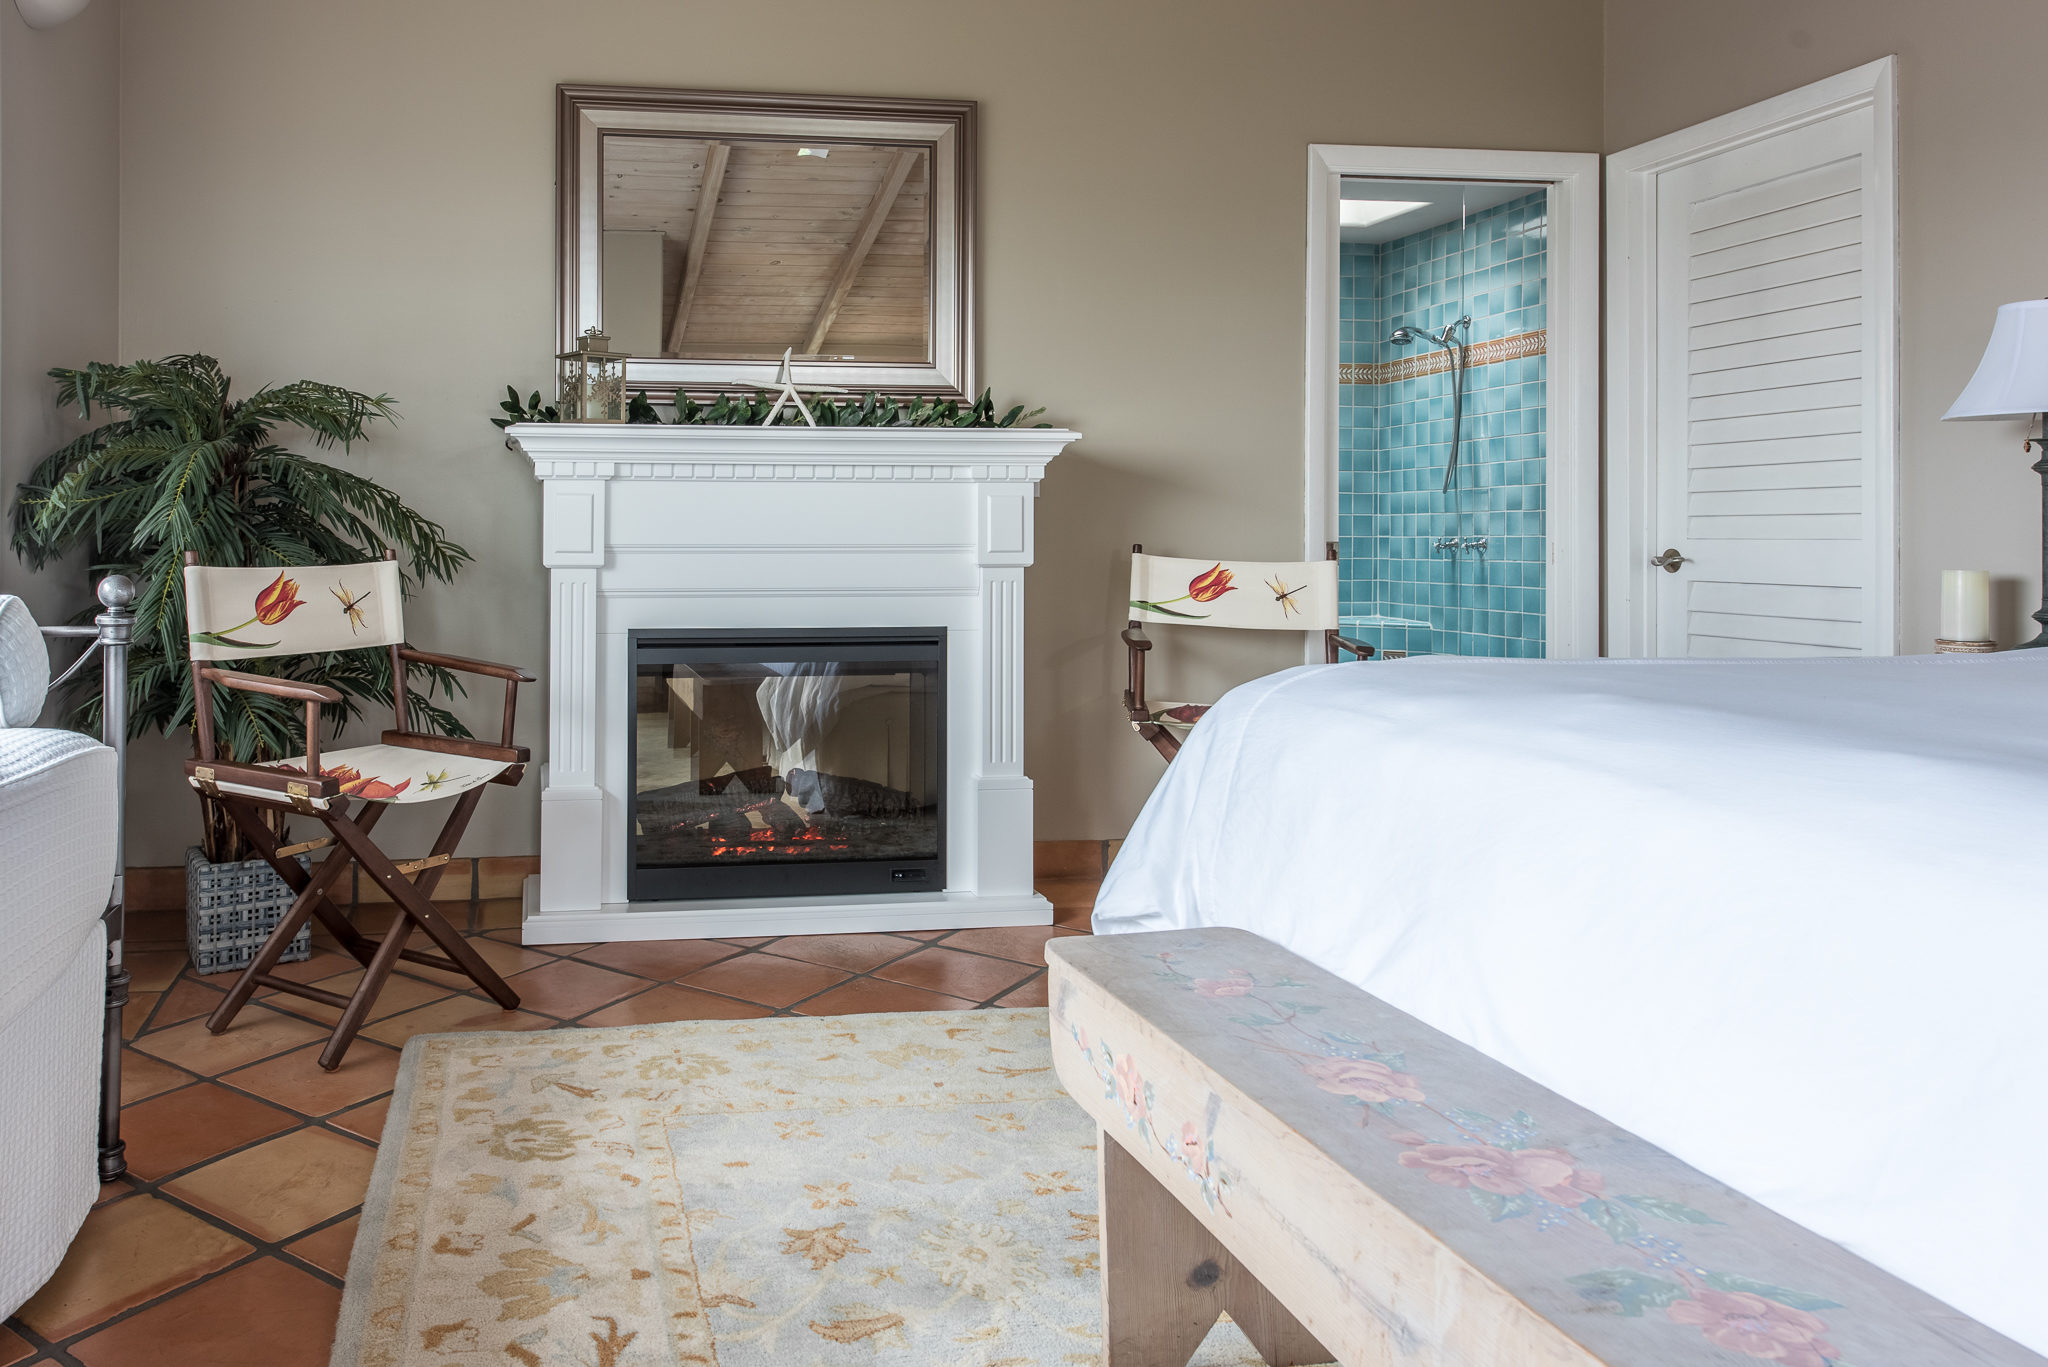 The Chatham Suite - Kate Stanton Bed and Breakfast, San Diego Area